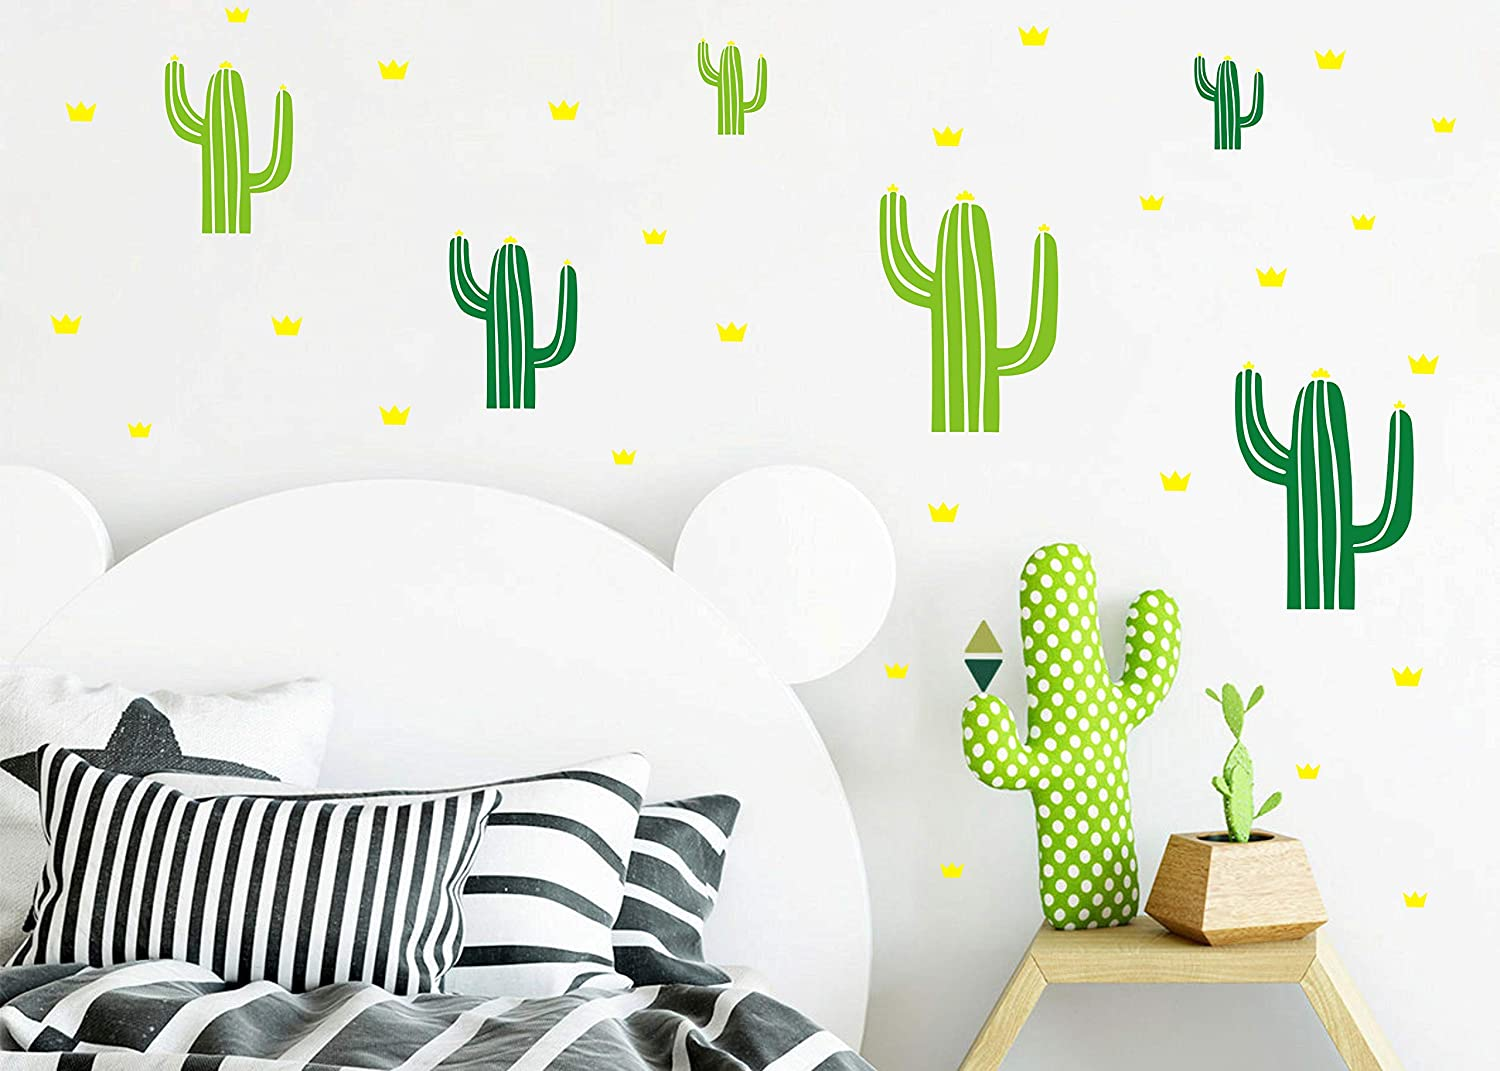 Cactus Wall Decals, Crown Wall Decal, 2 Color Cactus Nursery Decor, Vinyl Wall Decals for Baby Girls Boys Kids Bedroom Living Room, Wall Decals for Nursery Y21 (Green)